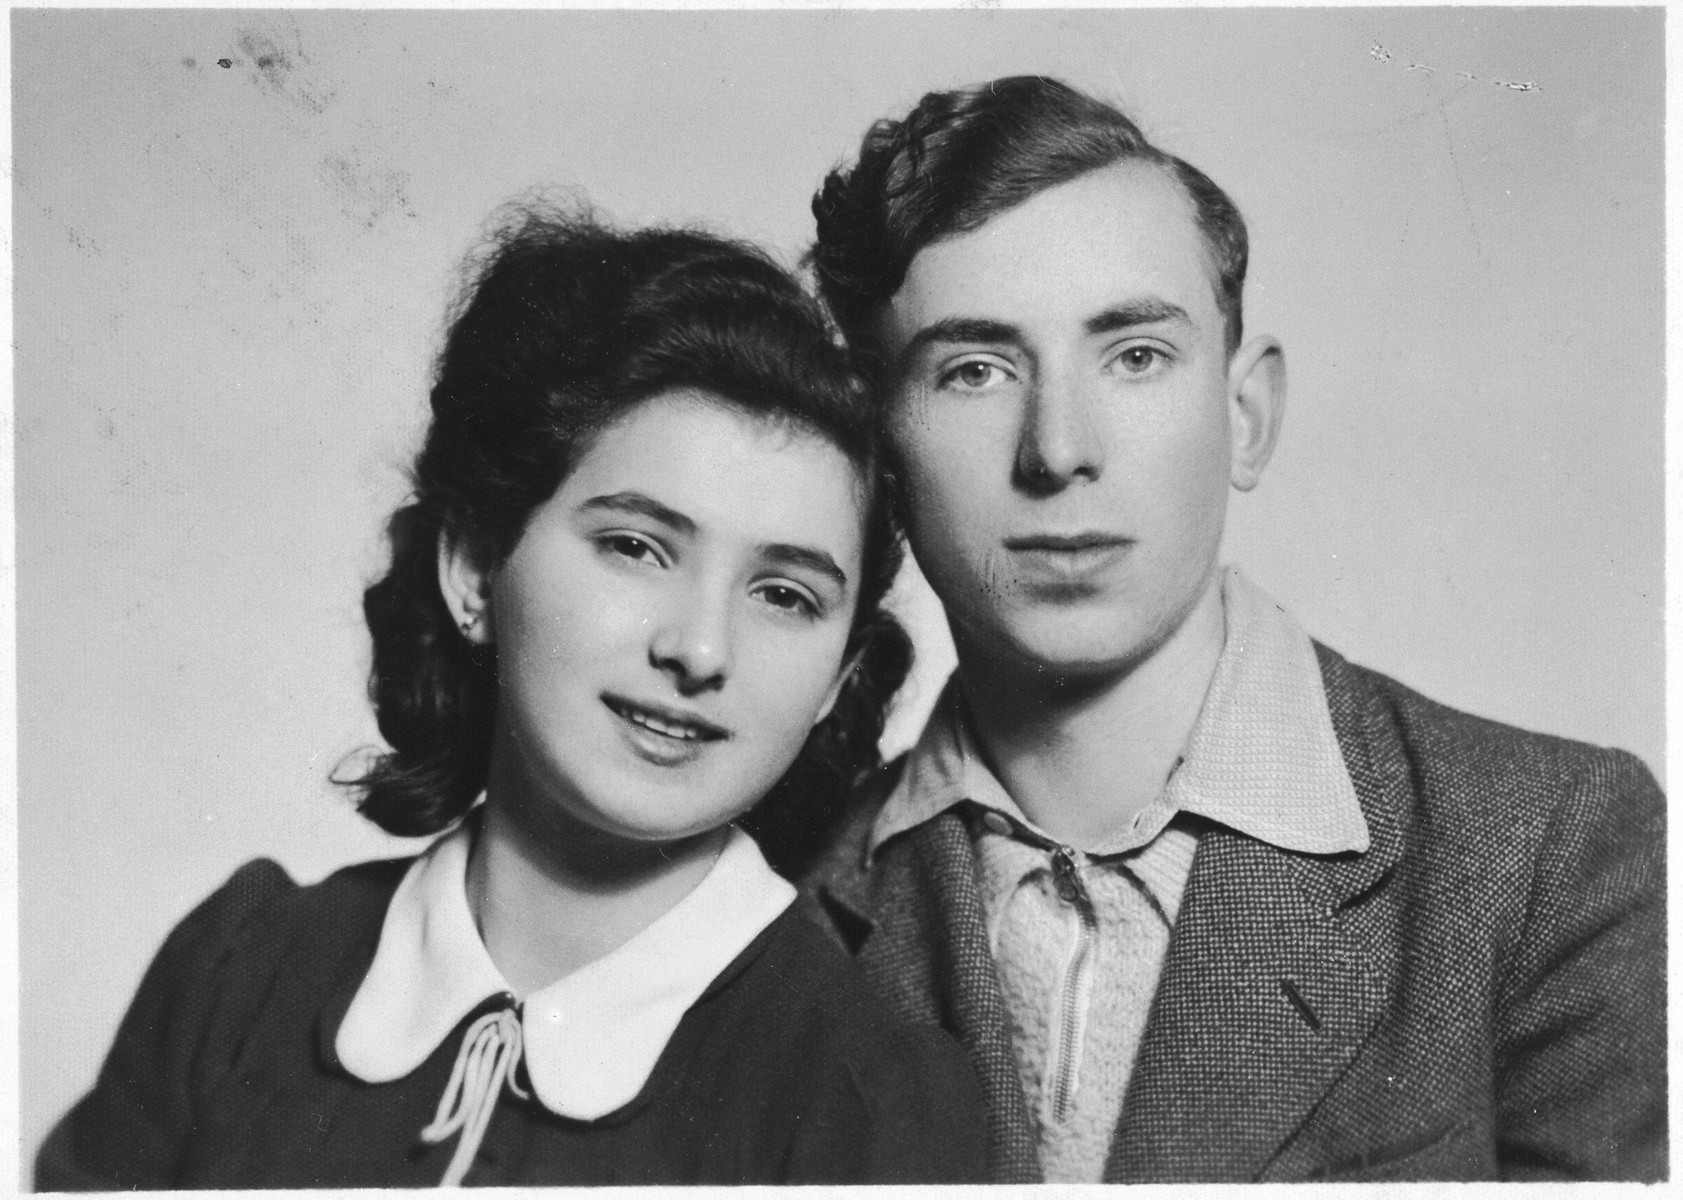 Close-up portrait of Zigi and Erma Zimmerstark (cousins of the donor) taken in the Krakow ghetto and sent to a relative in the United States.